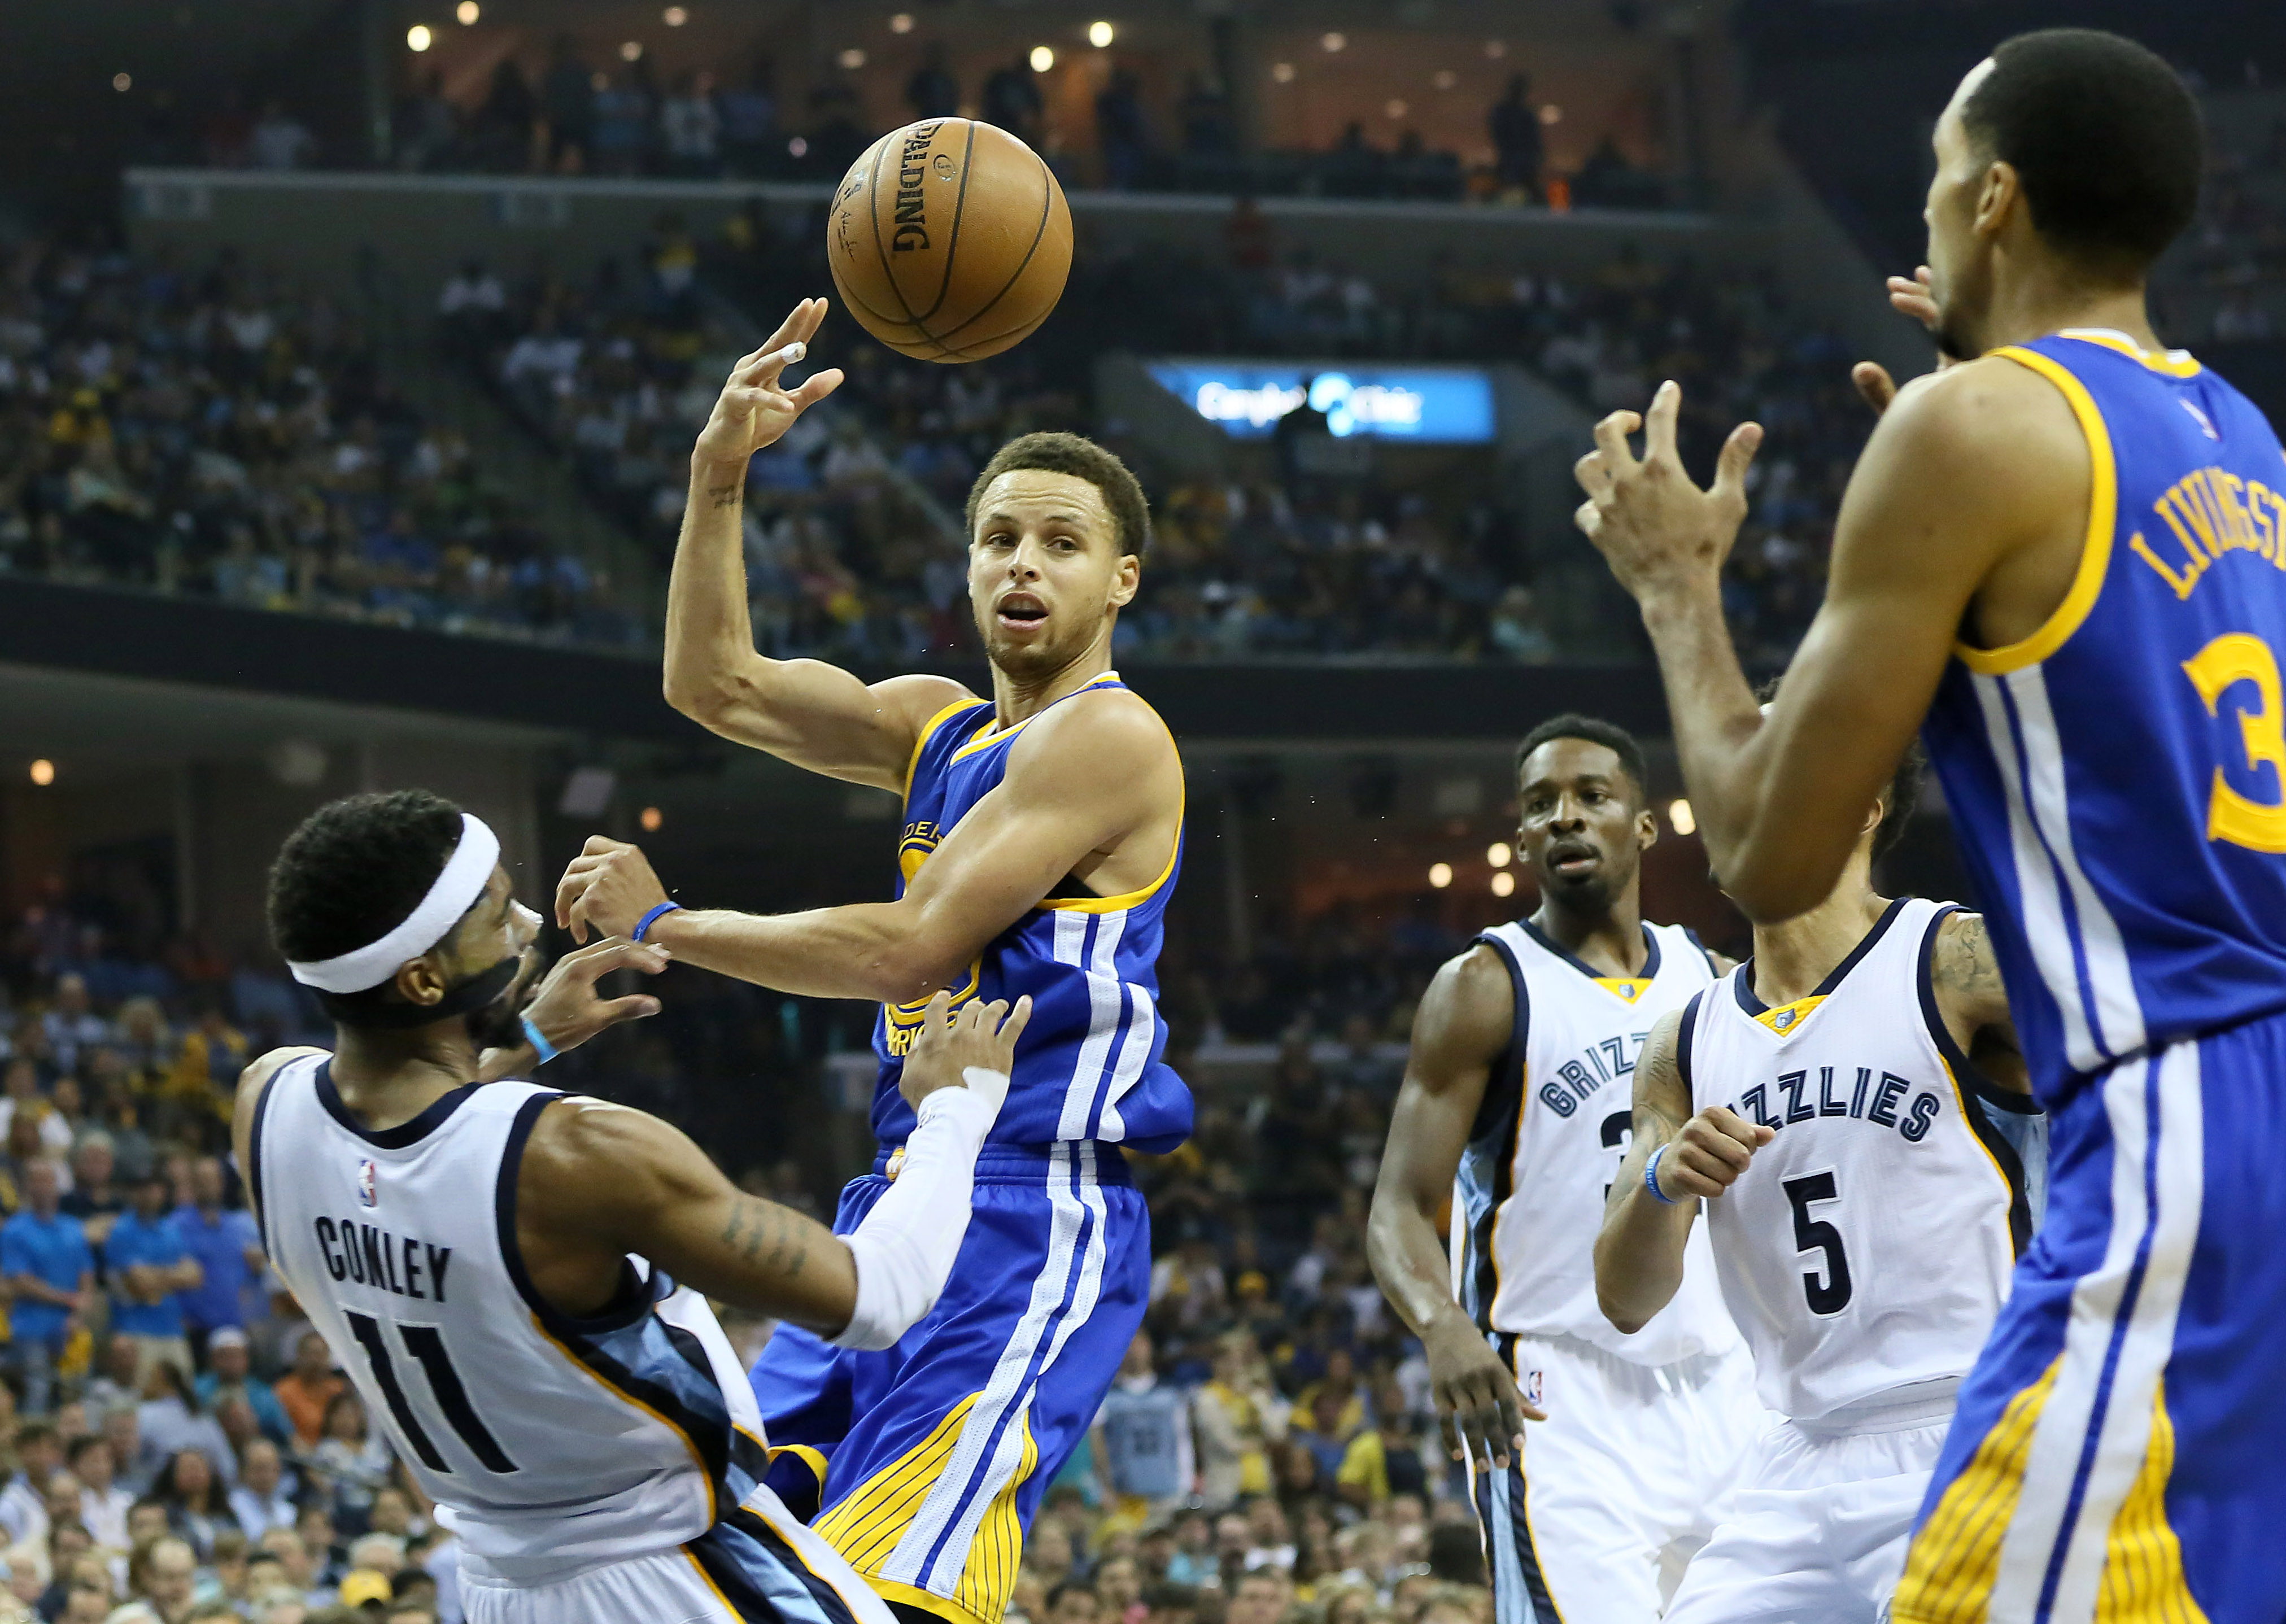 May 15, 2015; Memphis, TN, USA; Golden State Warriors guard Stephen Curry (30) passes to guard Shaun Livingston (34) as Memphis Grizzlies guard Mike Conley (11) defends in the third quarter of game six of the second round of the NBA Playoffs at FedExForum. Mandatory Credit: Nelson Chenault-USA TODAY Sports